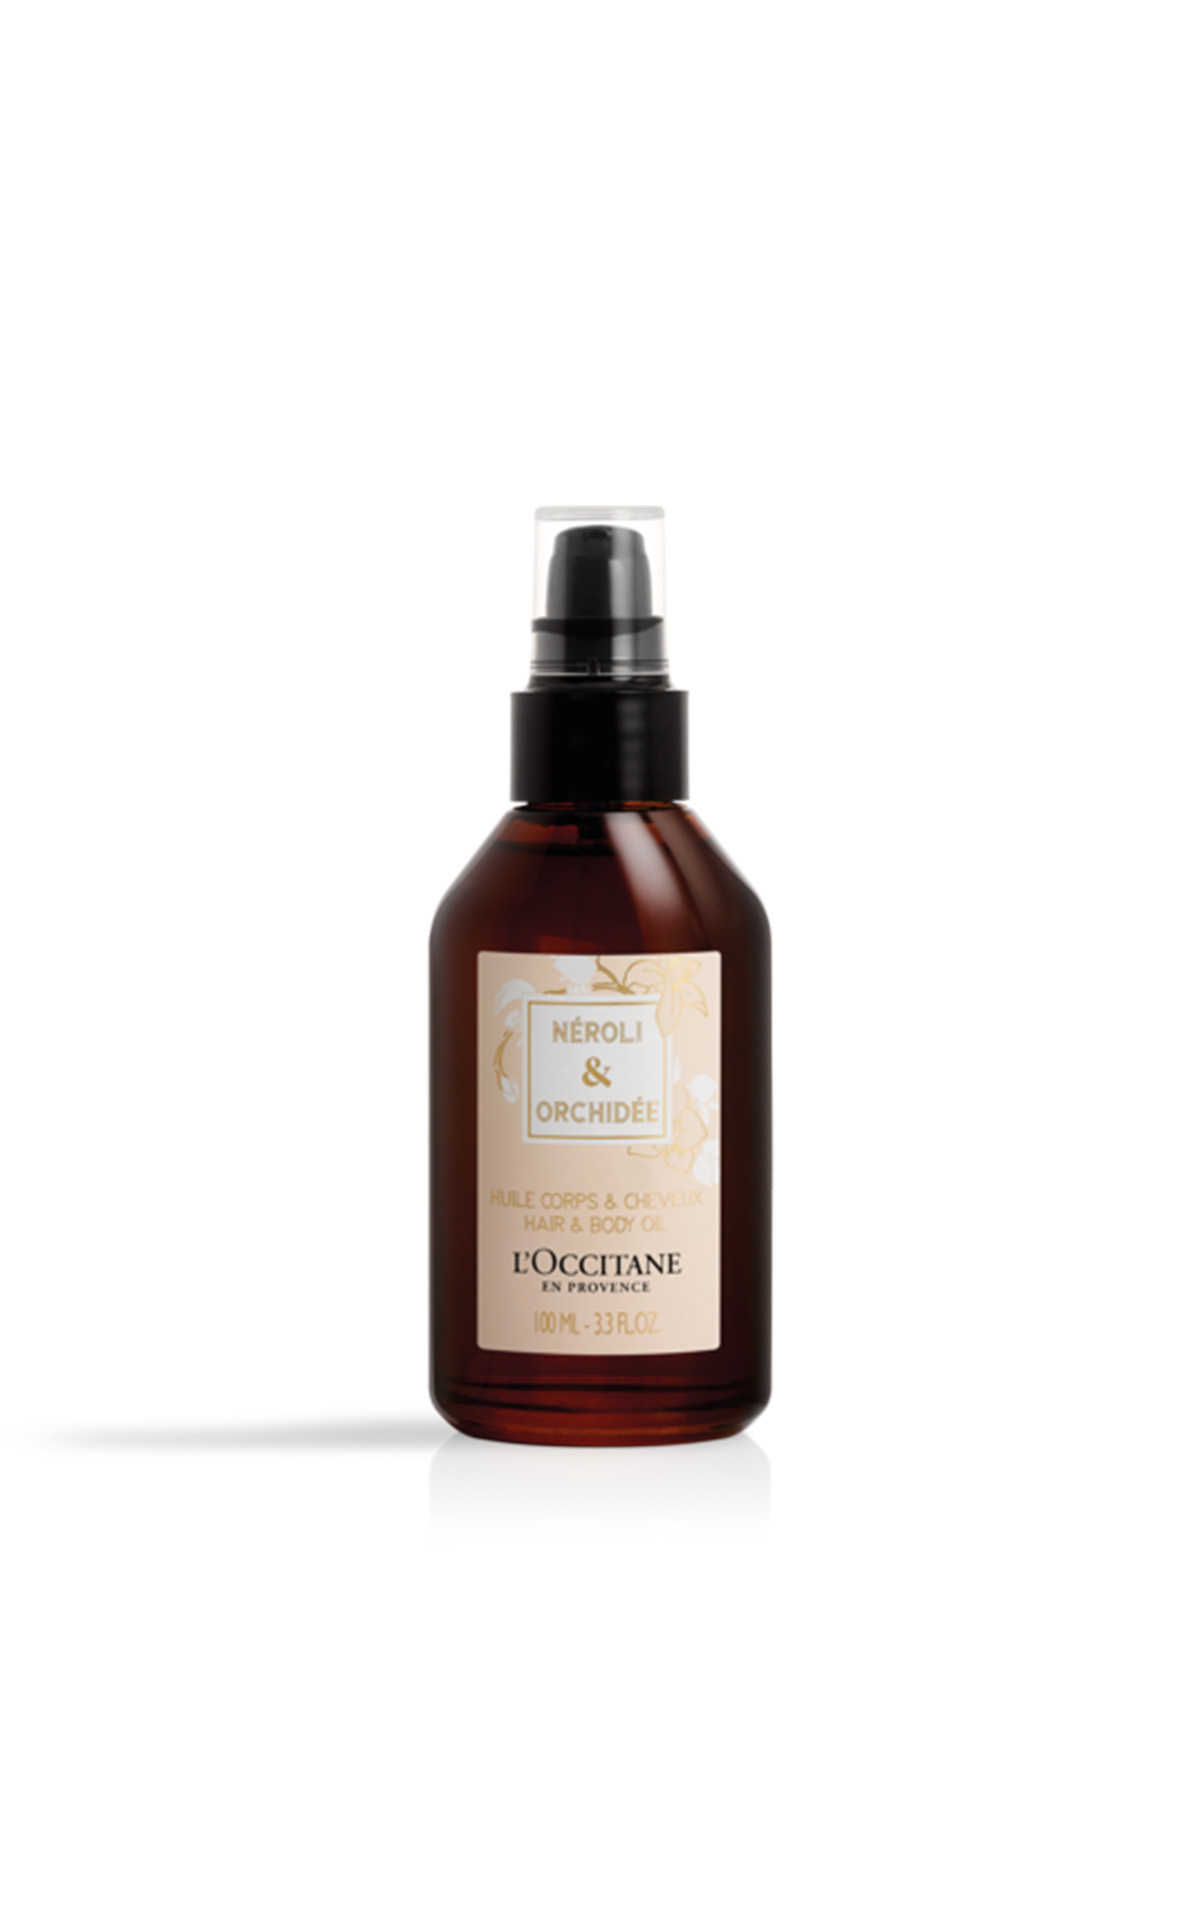 L'Occitane No hair body oil 100ml from Bicester Village